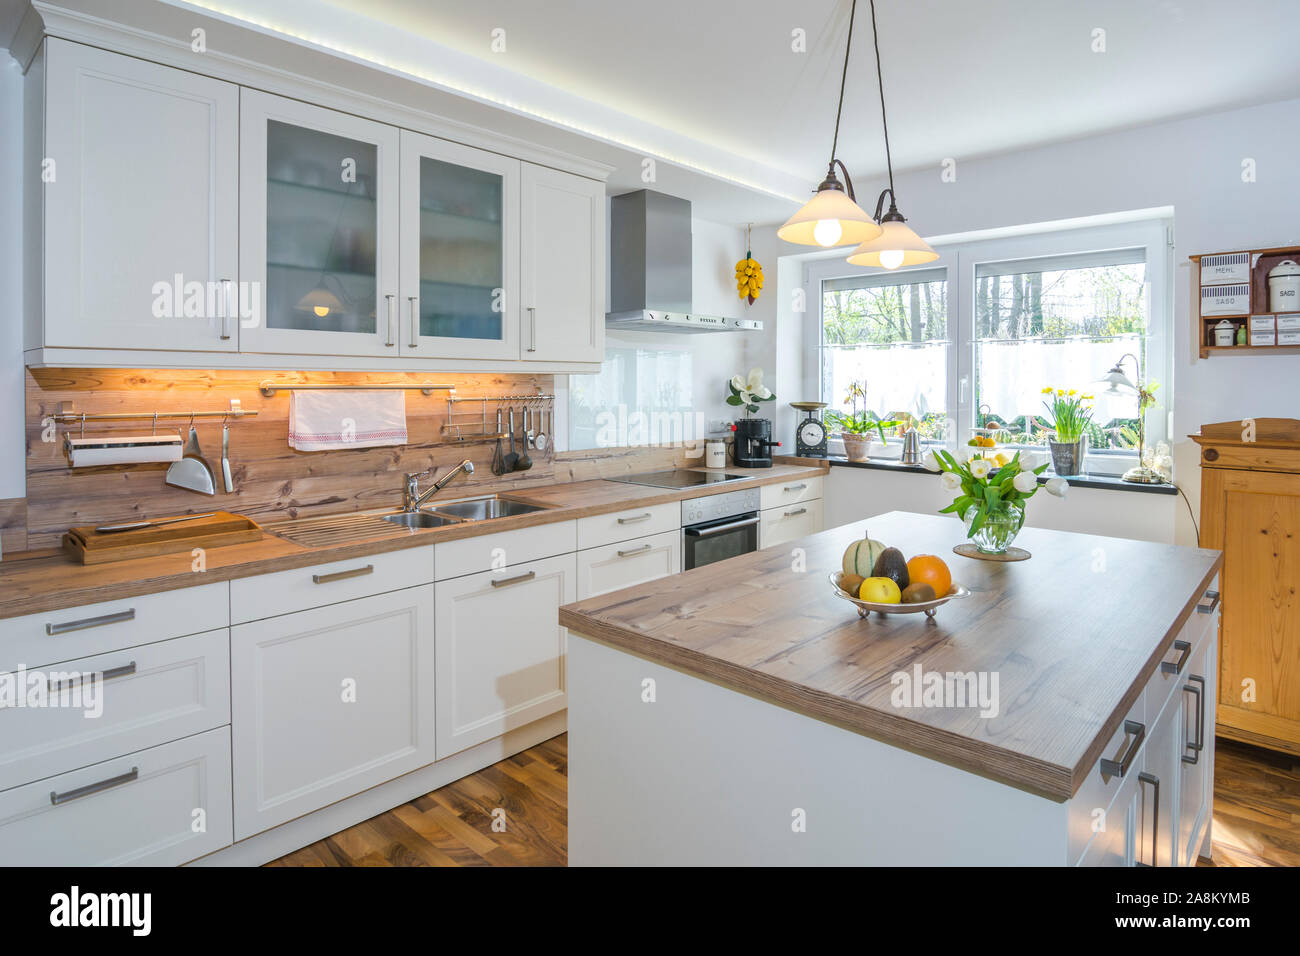 Nice Country Style Kitchen In Modern House Stock Photo Alamy